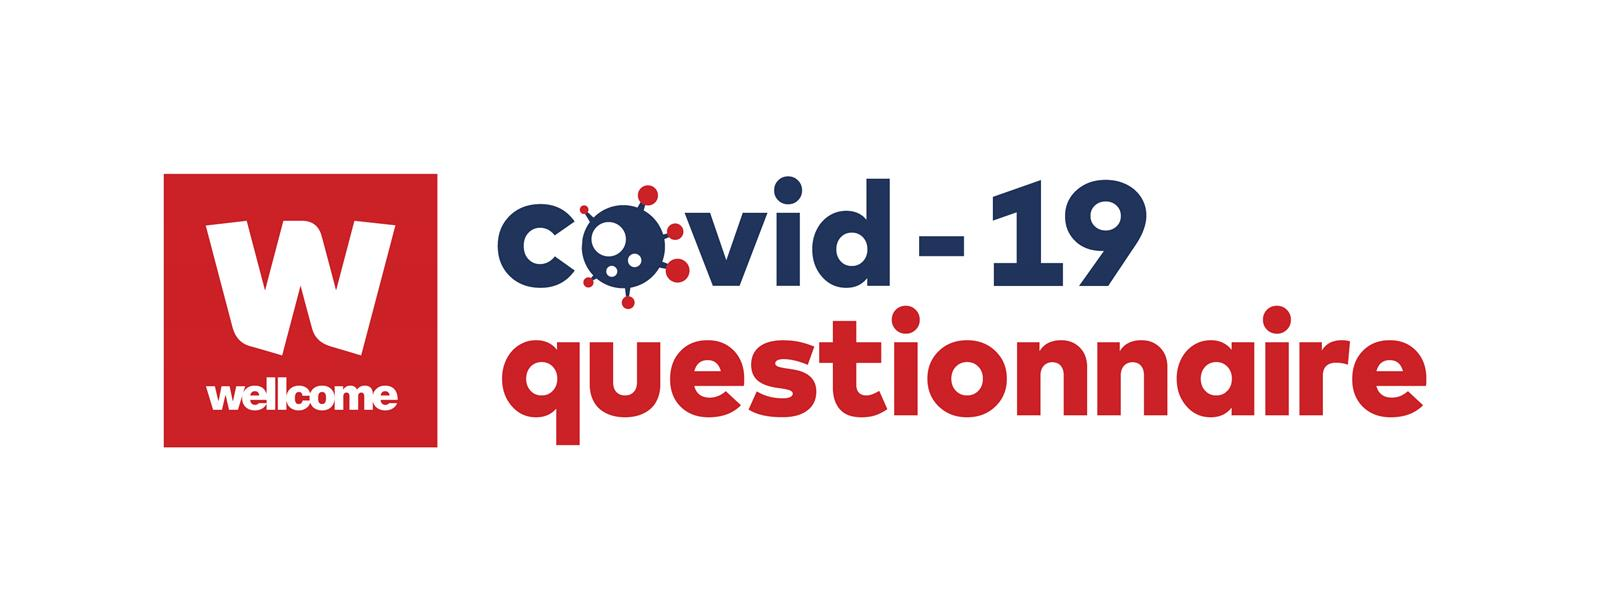 STUDENT COVID-19 Questionnaire